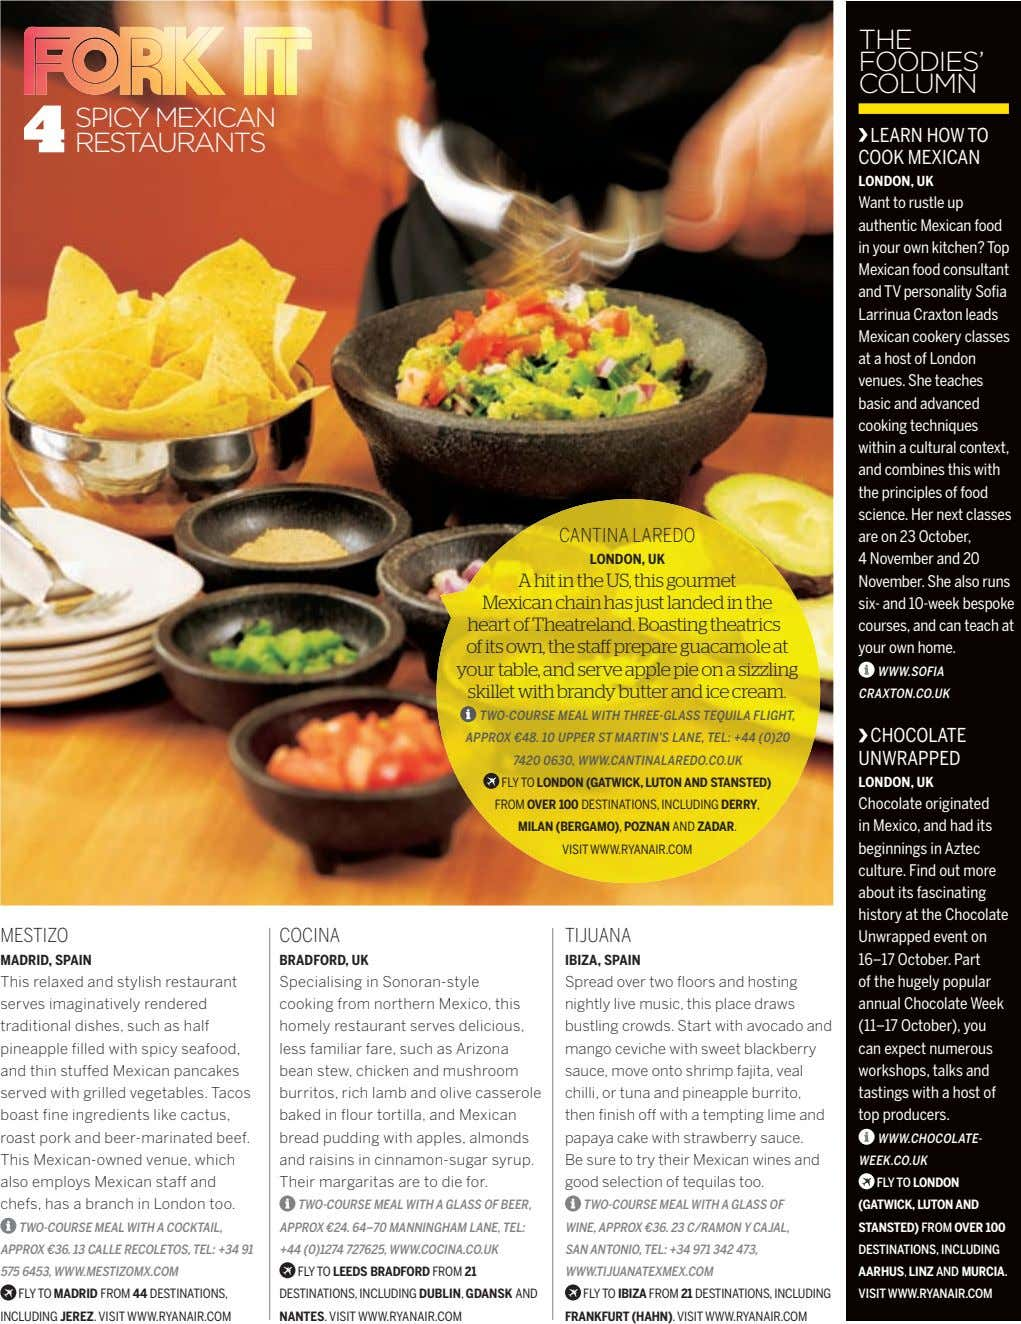 THE FOODIES' COLUMN SPICY MEXICAN RESTAURANTS LEARN HOW TO COOK MEXICAN LONDON, UK CANTINA LAREDO